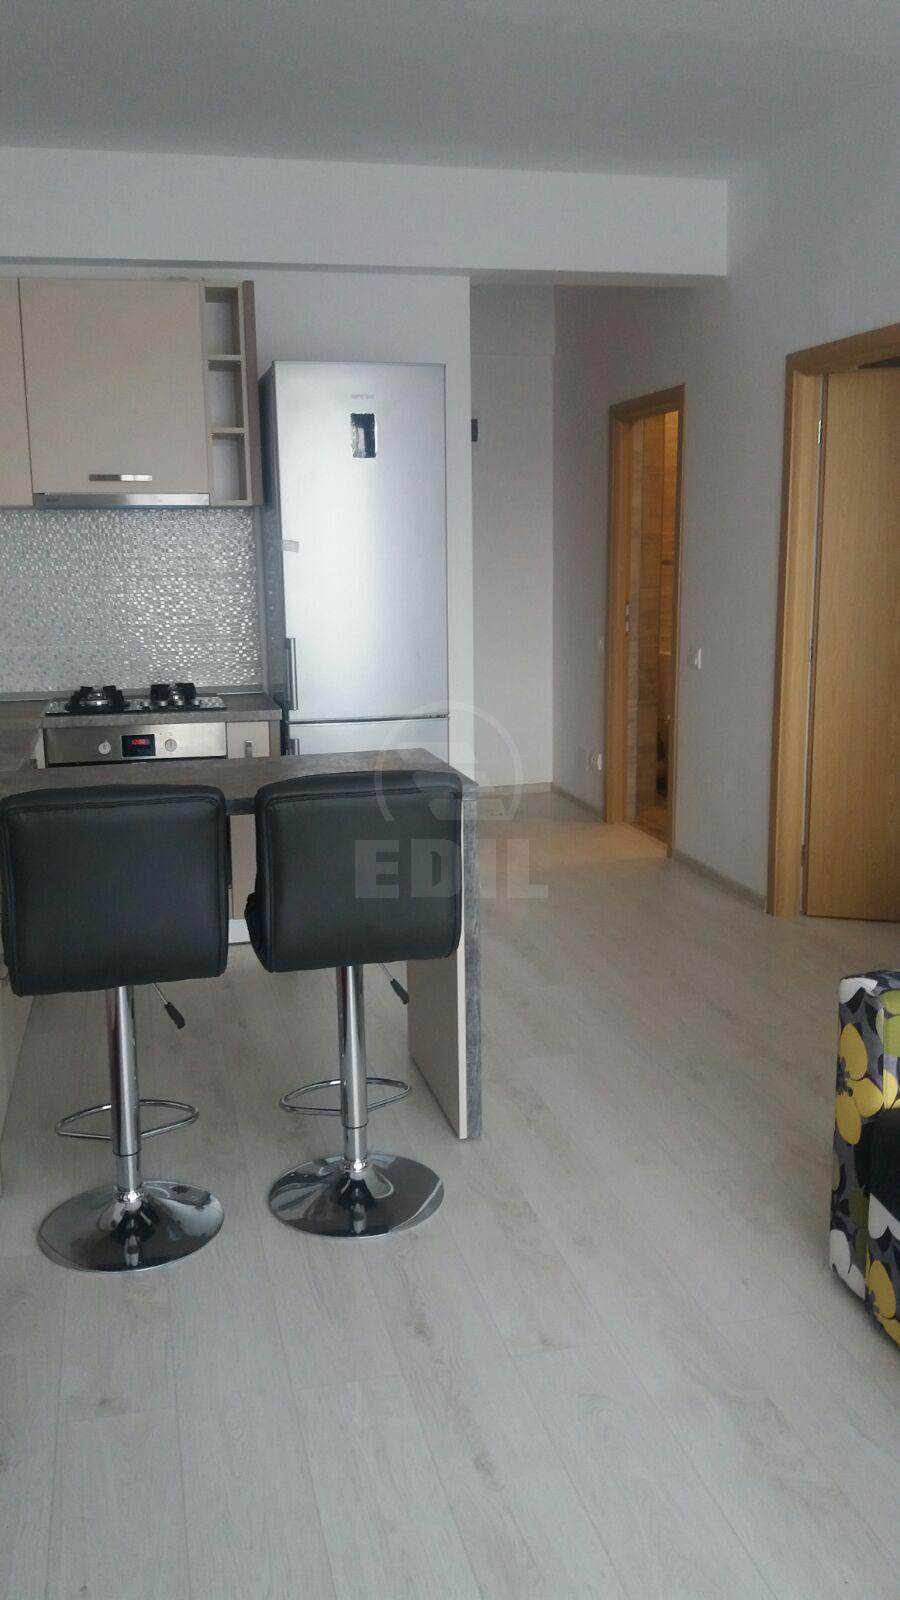 Apartment for rent 2 rooms, APCJ279074-5